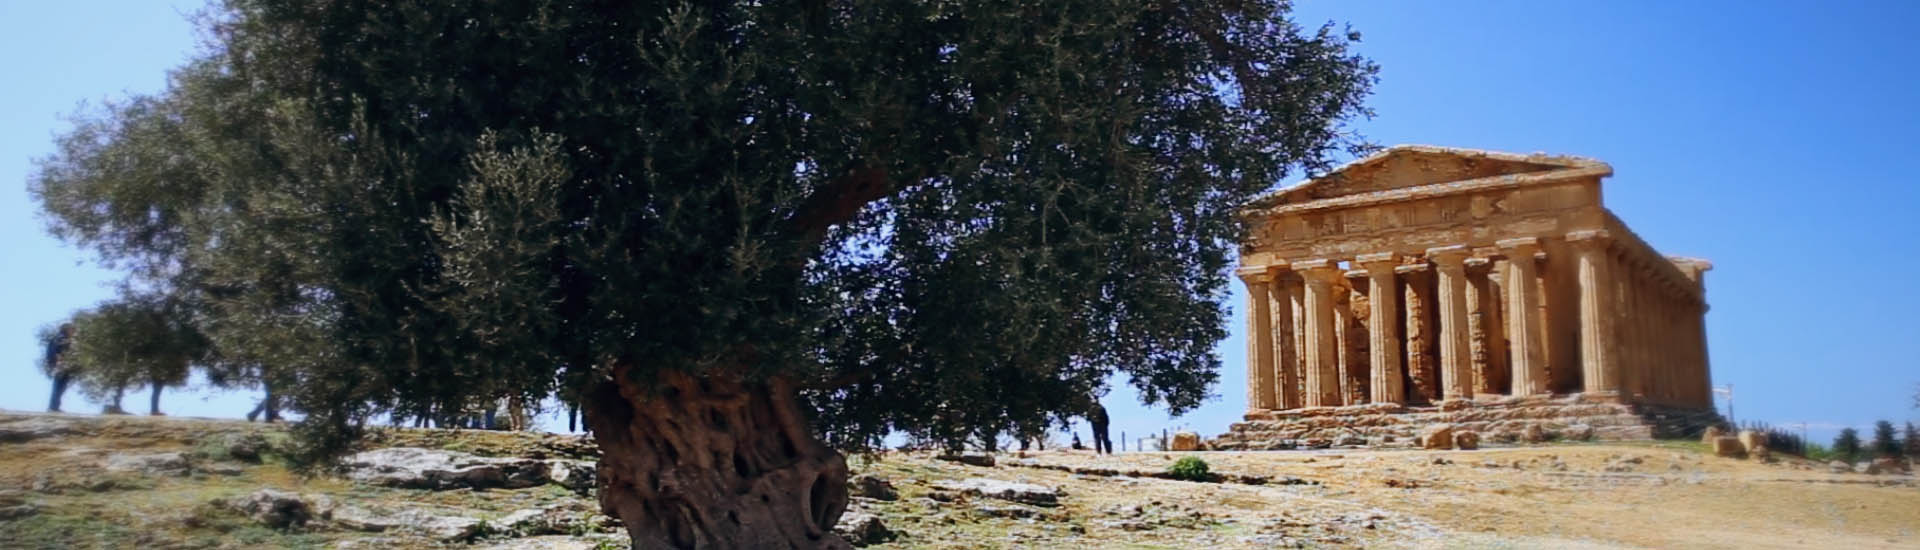 Holidays in Agrigento